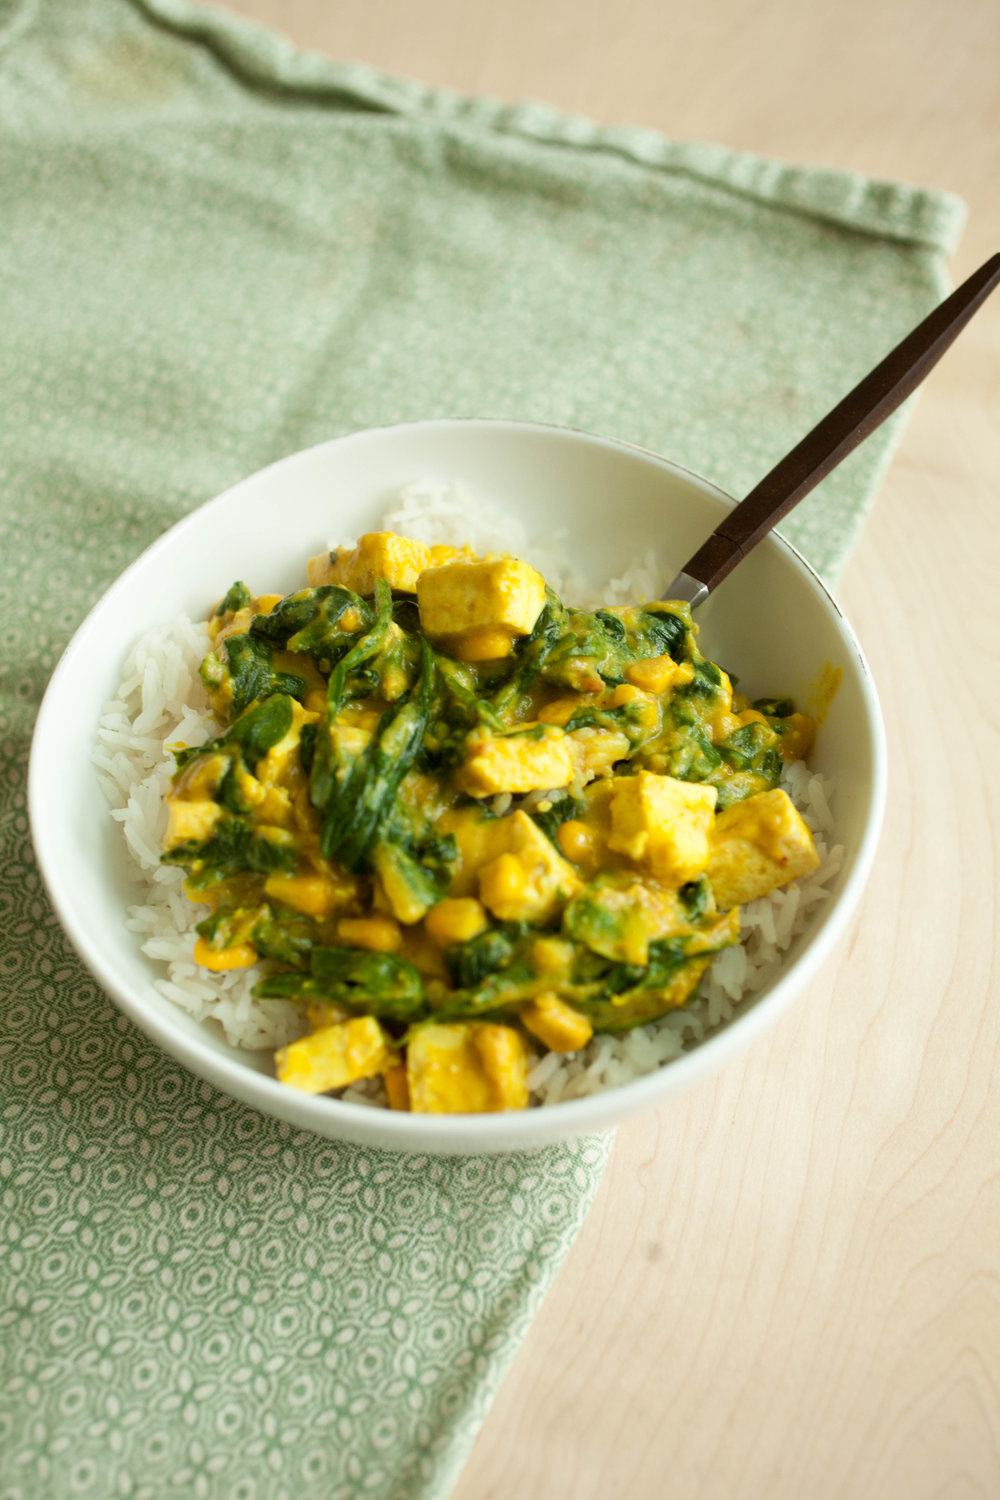 Produce On Parade - Vegan Saag Tofu Paneer - This meal is a spiced, green powerhouse with filling plant-protein. Creamy vegan saag tofu paneer is sure to please even spinach haters (at least it did in my house). It's quick and easy too; a terrific and unique weekday meal that's hearty, comforting, and satisfying. Slightly adapted from Serious Eats.